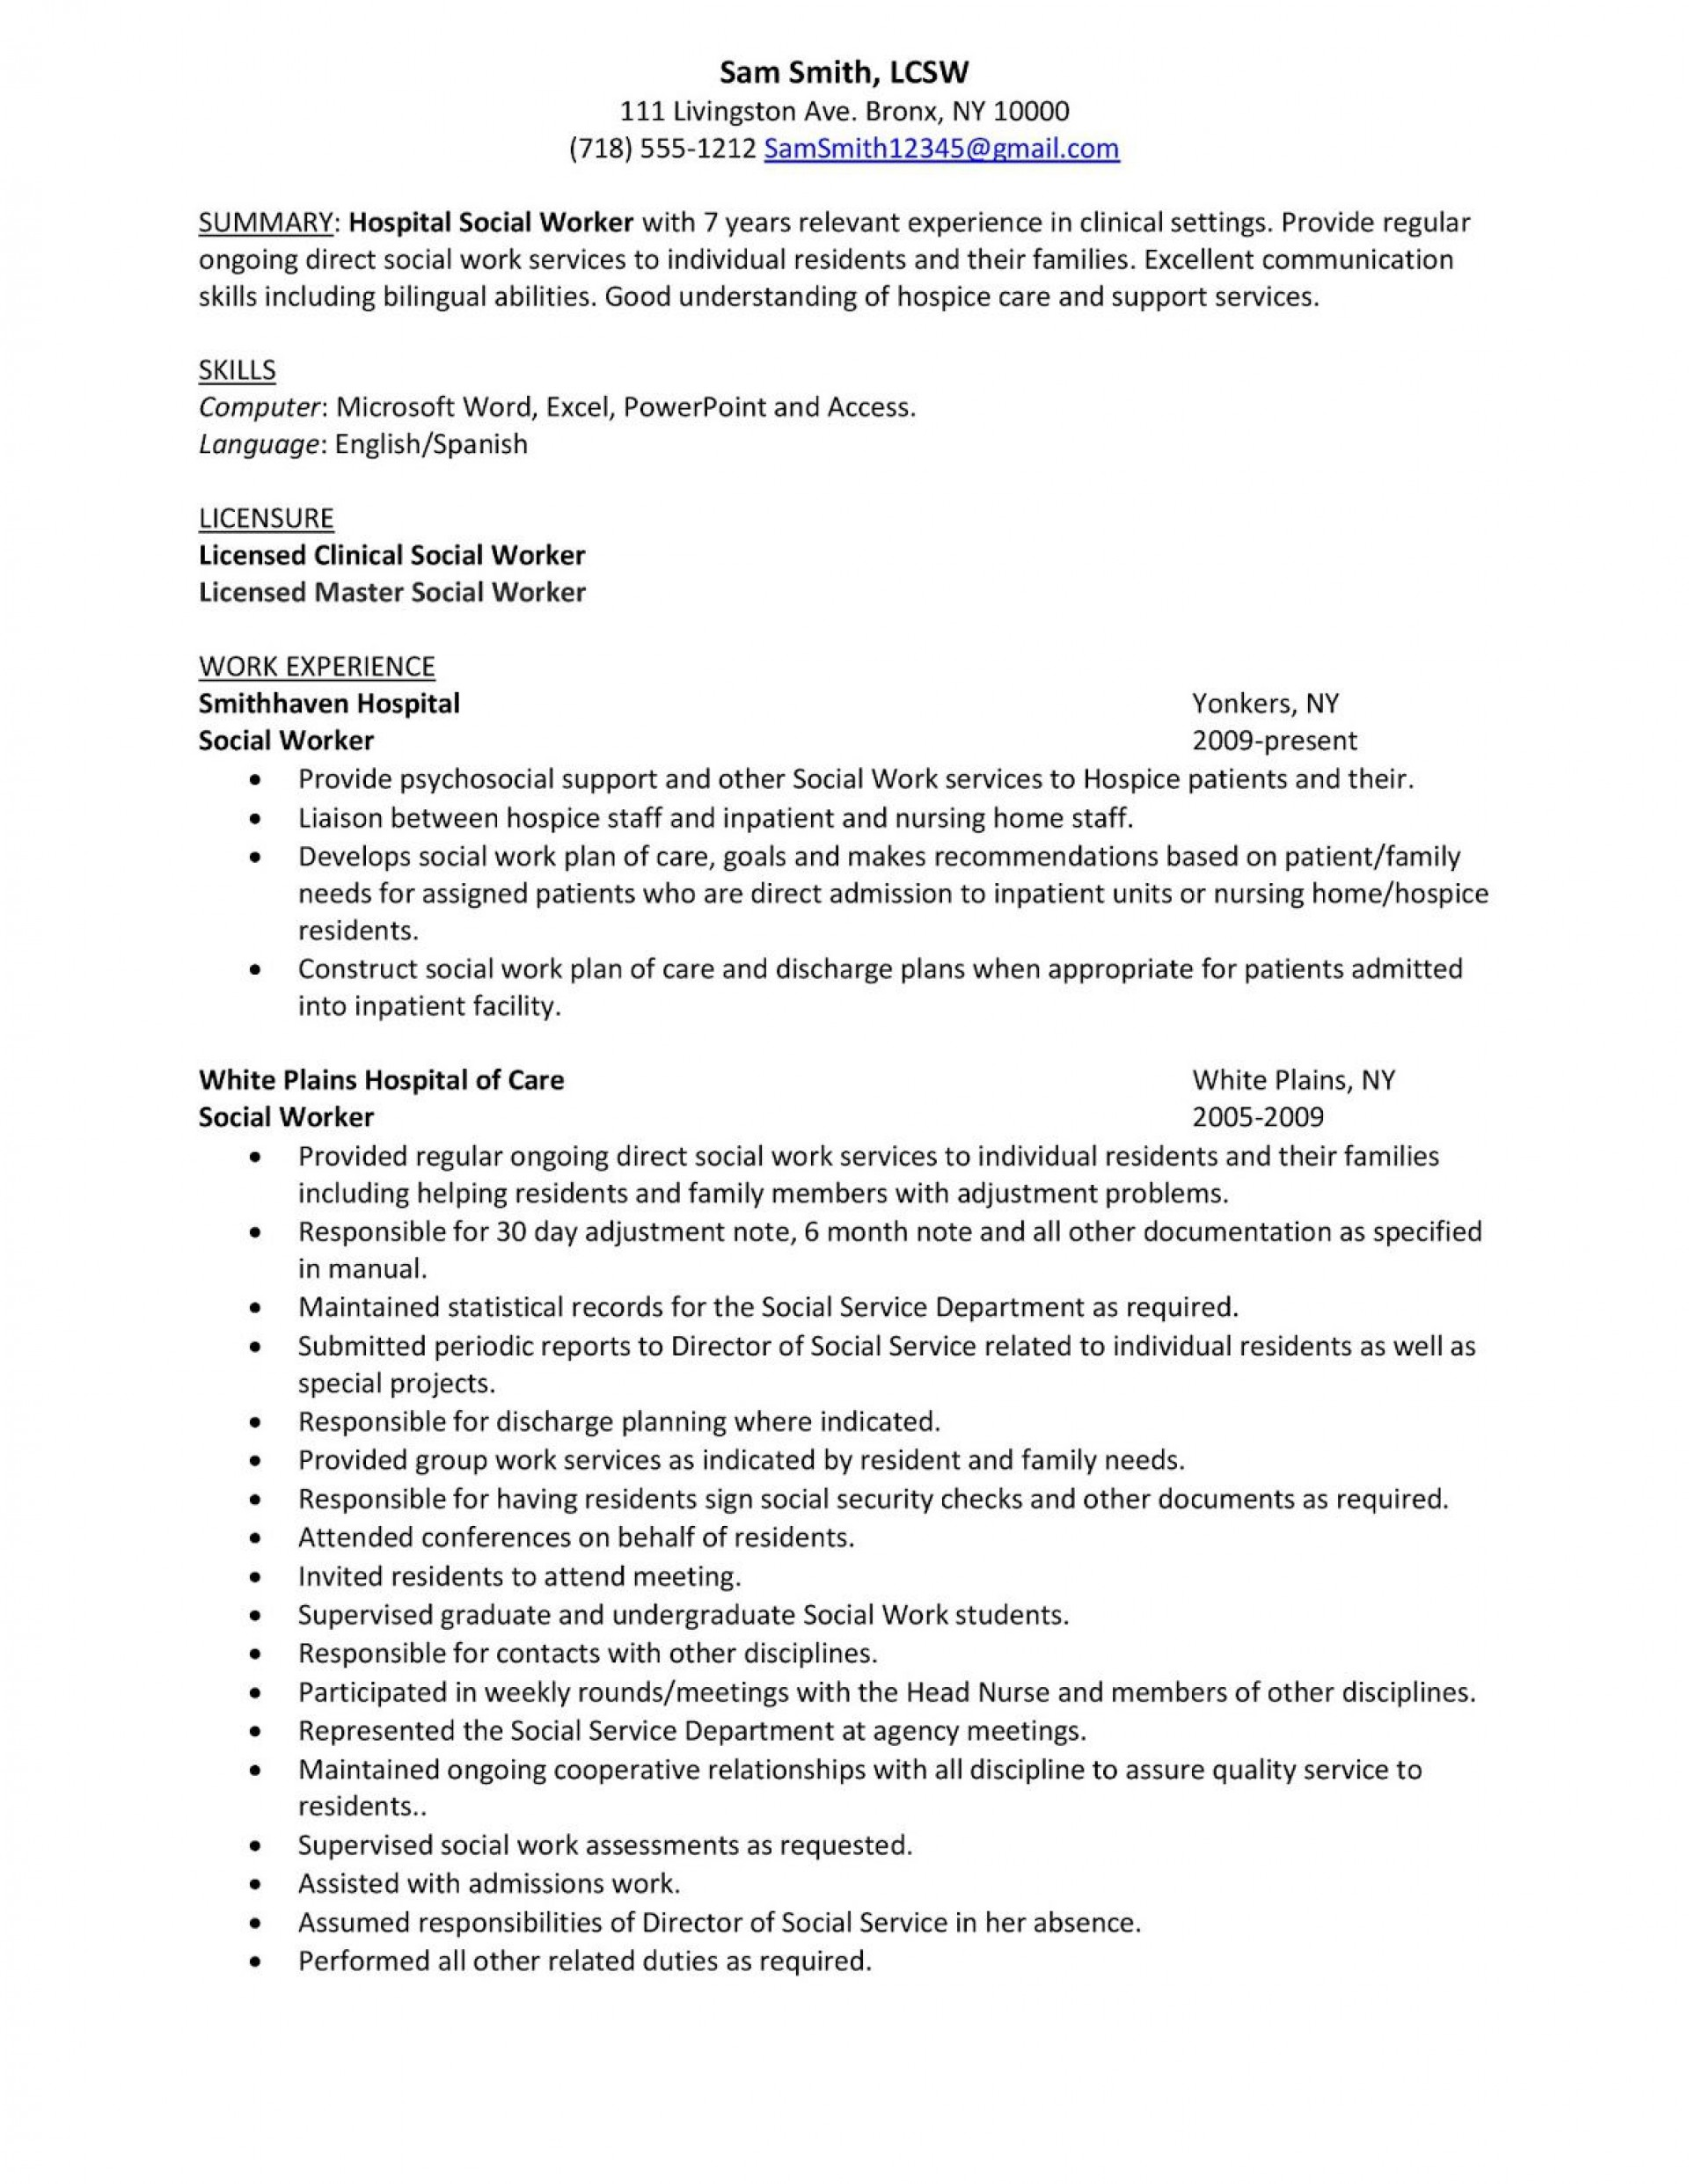 social work resume template addictionary words fearsome ideas hvac job description Resume Social Work Resume Words